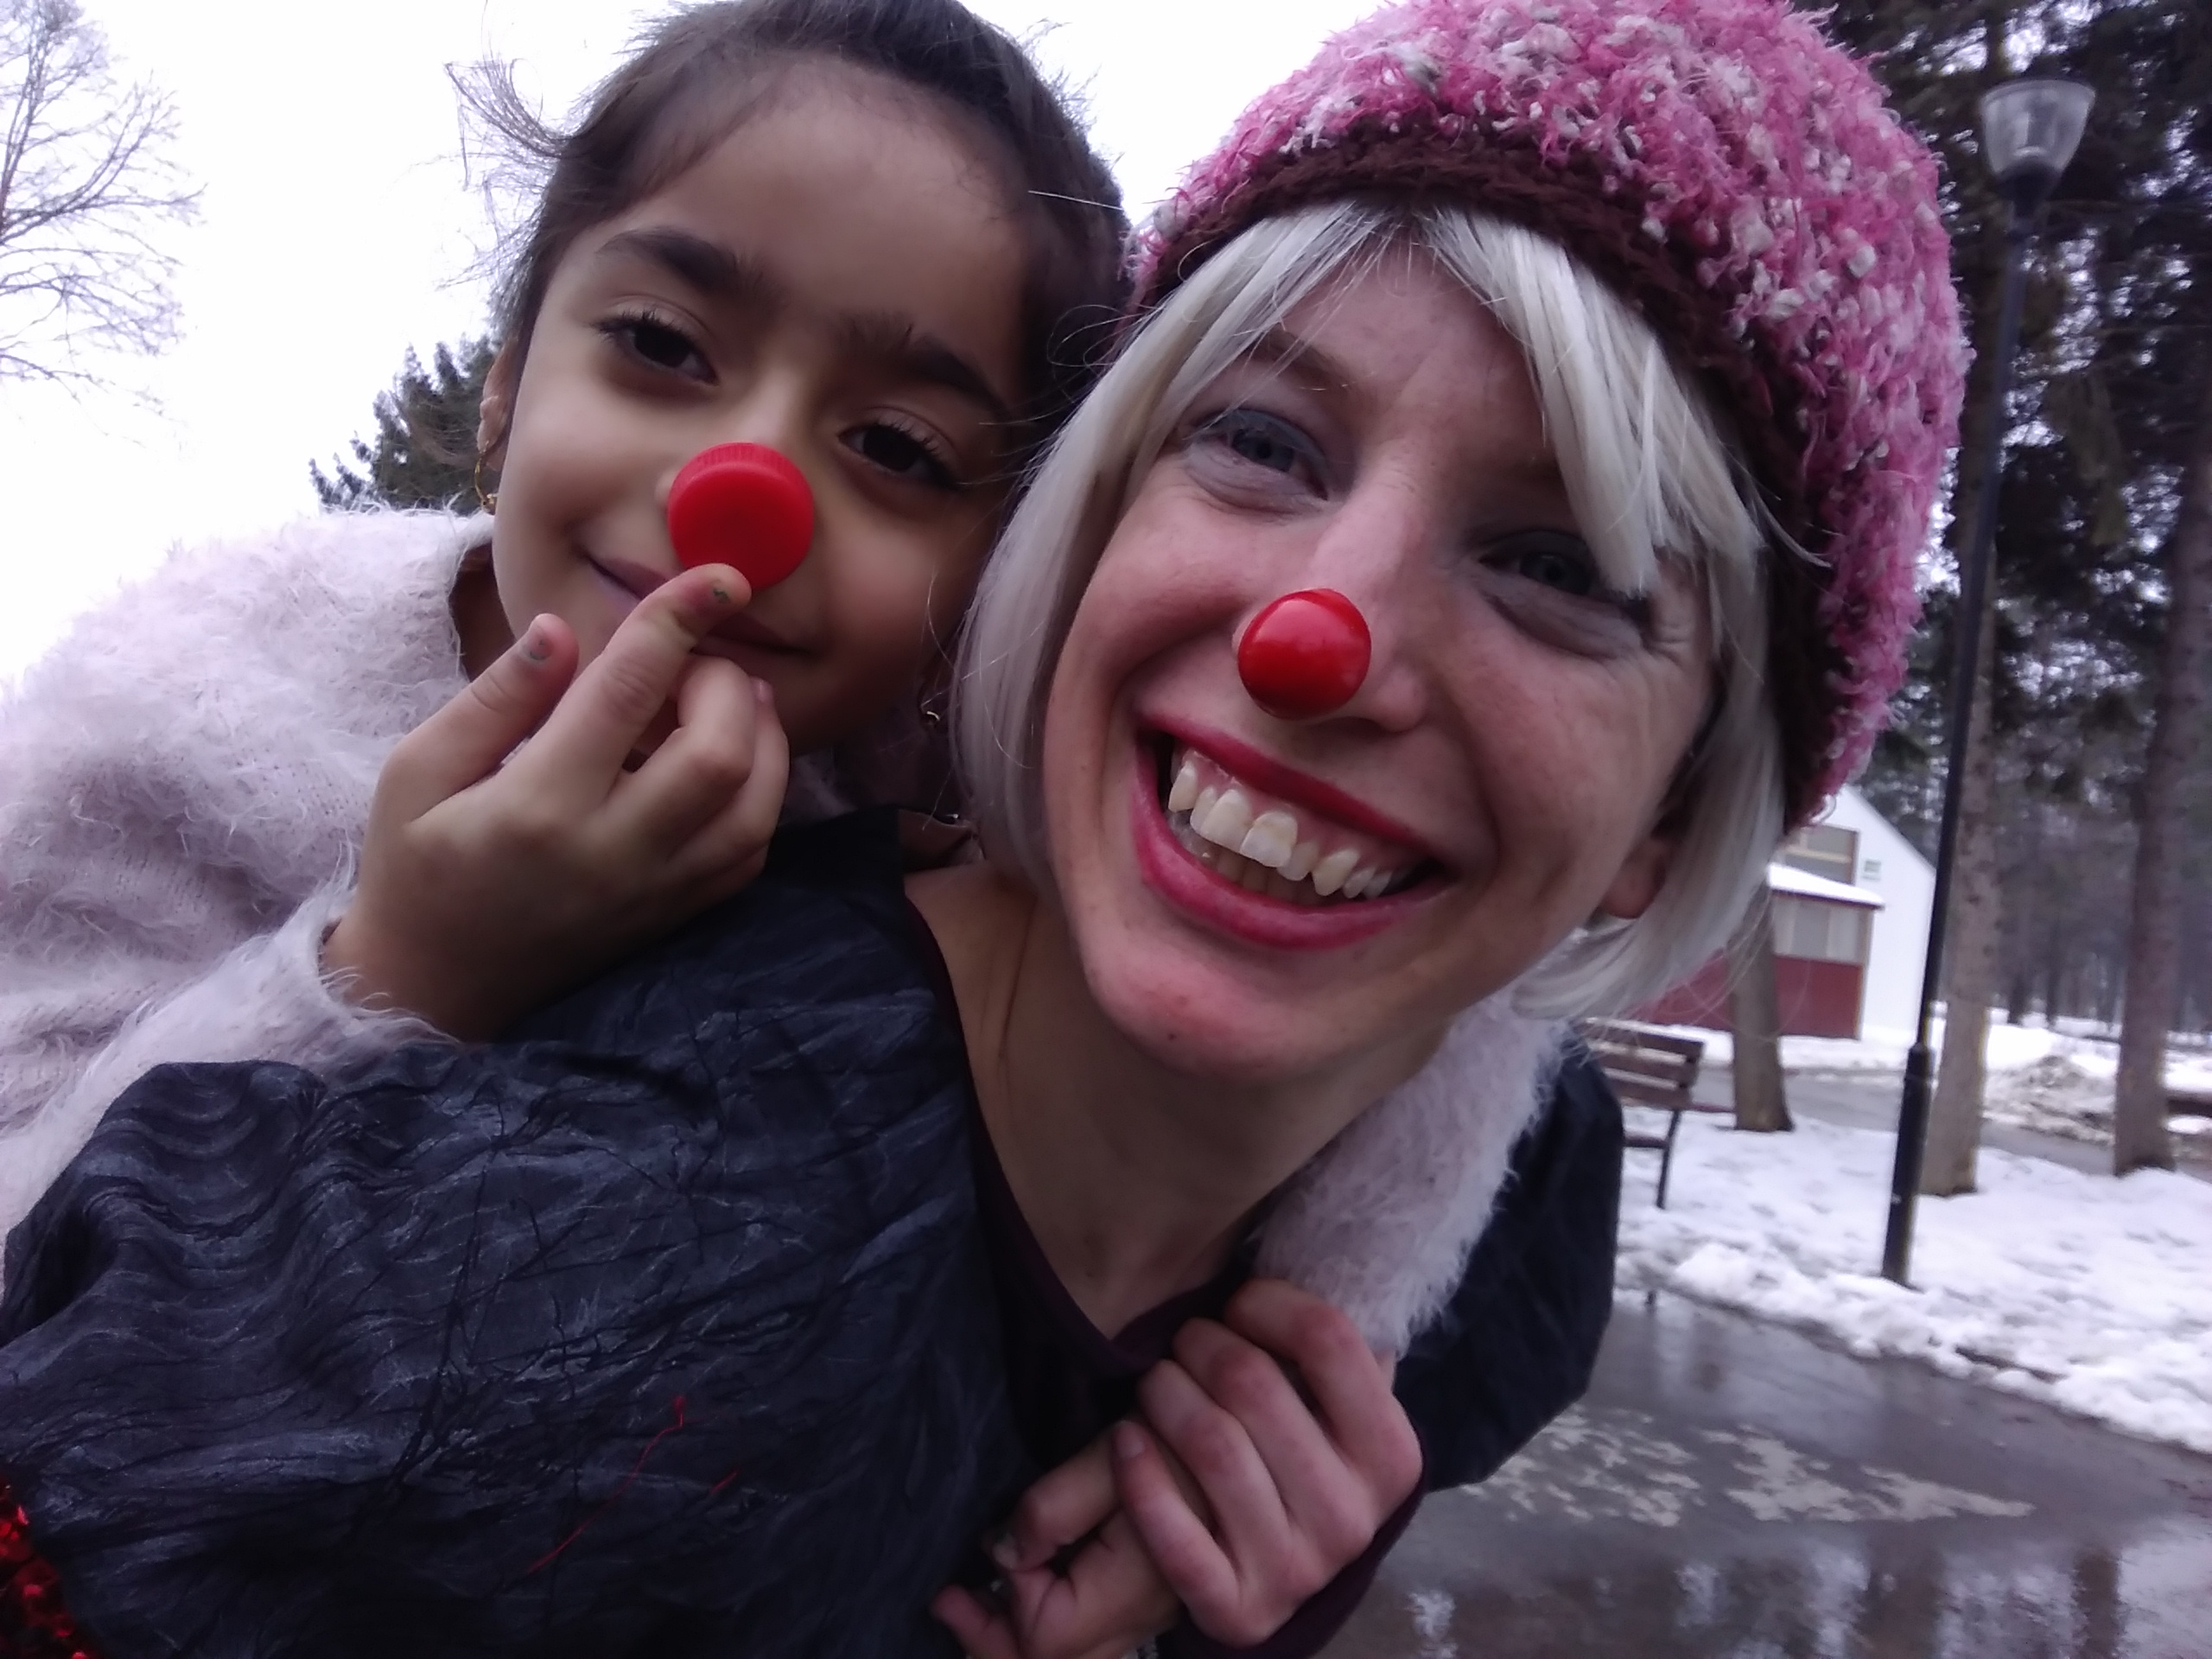 Bekha and a little girl smile for the camera in their red noses